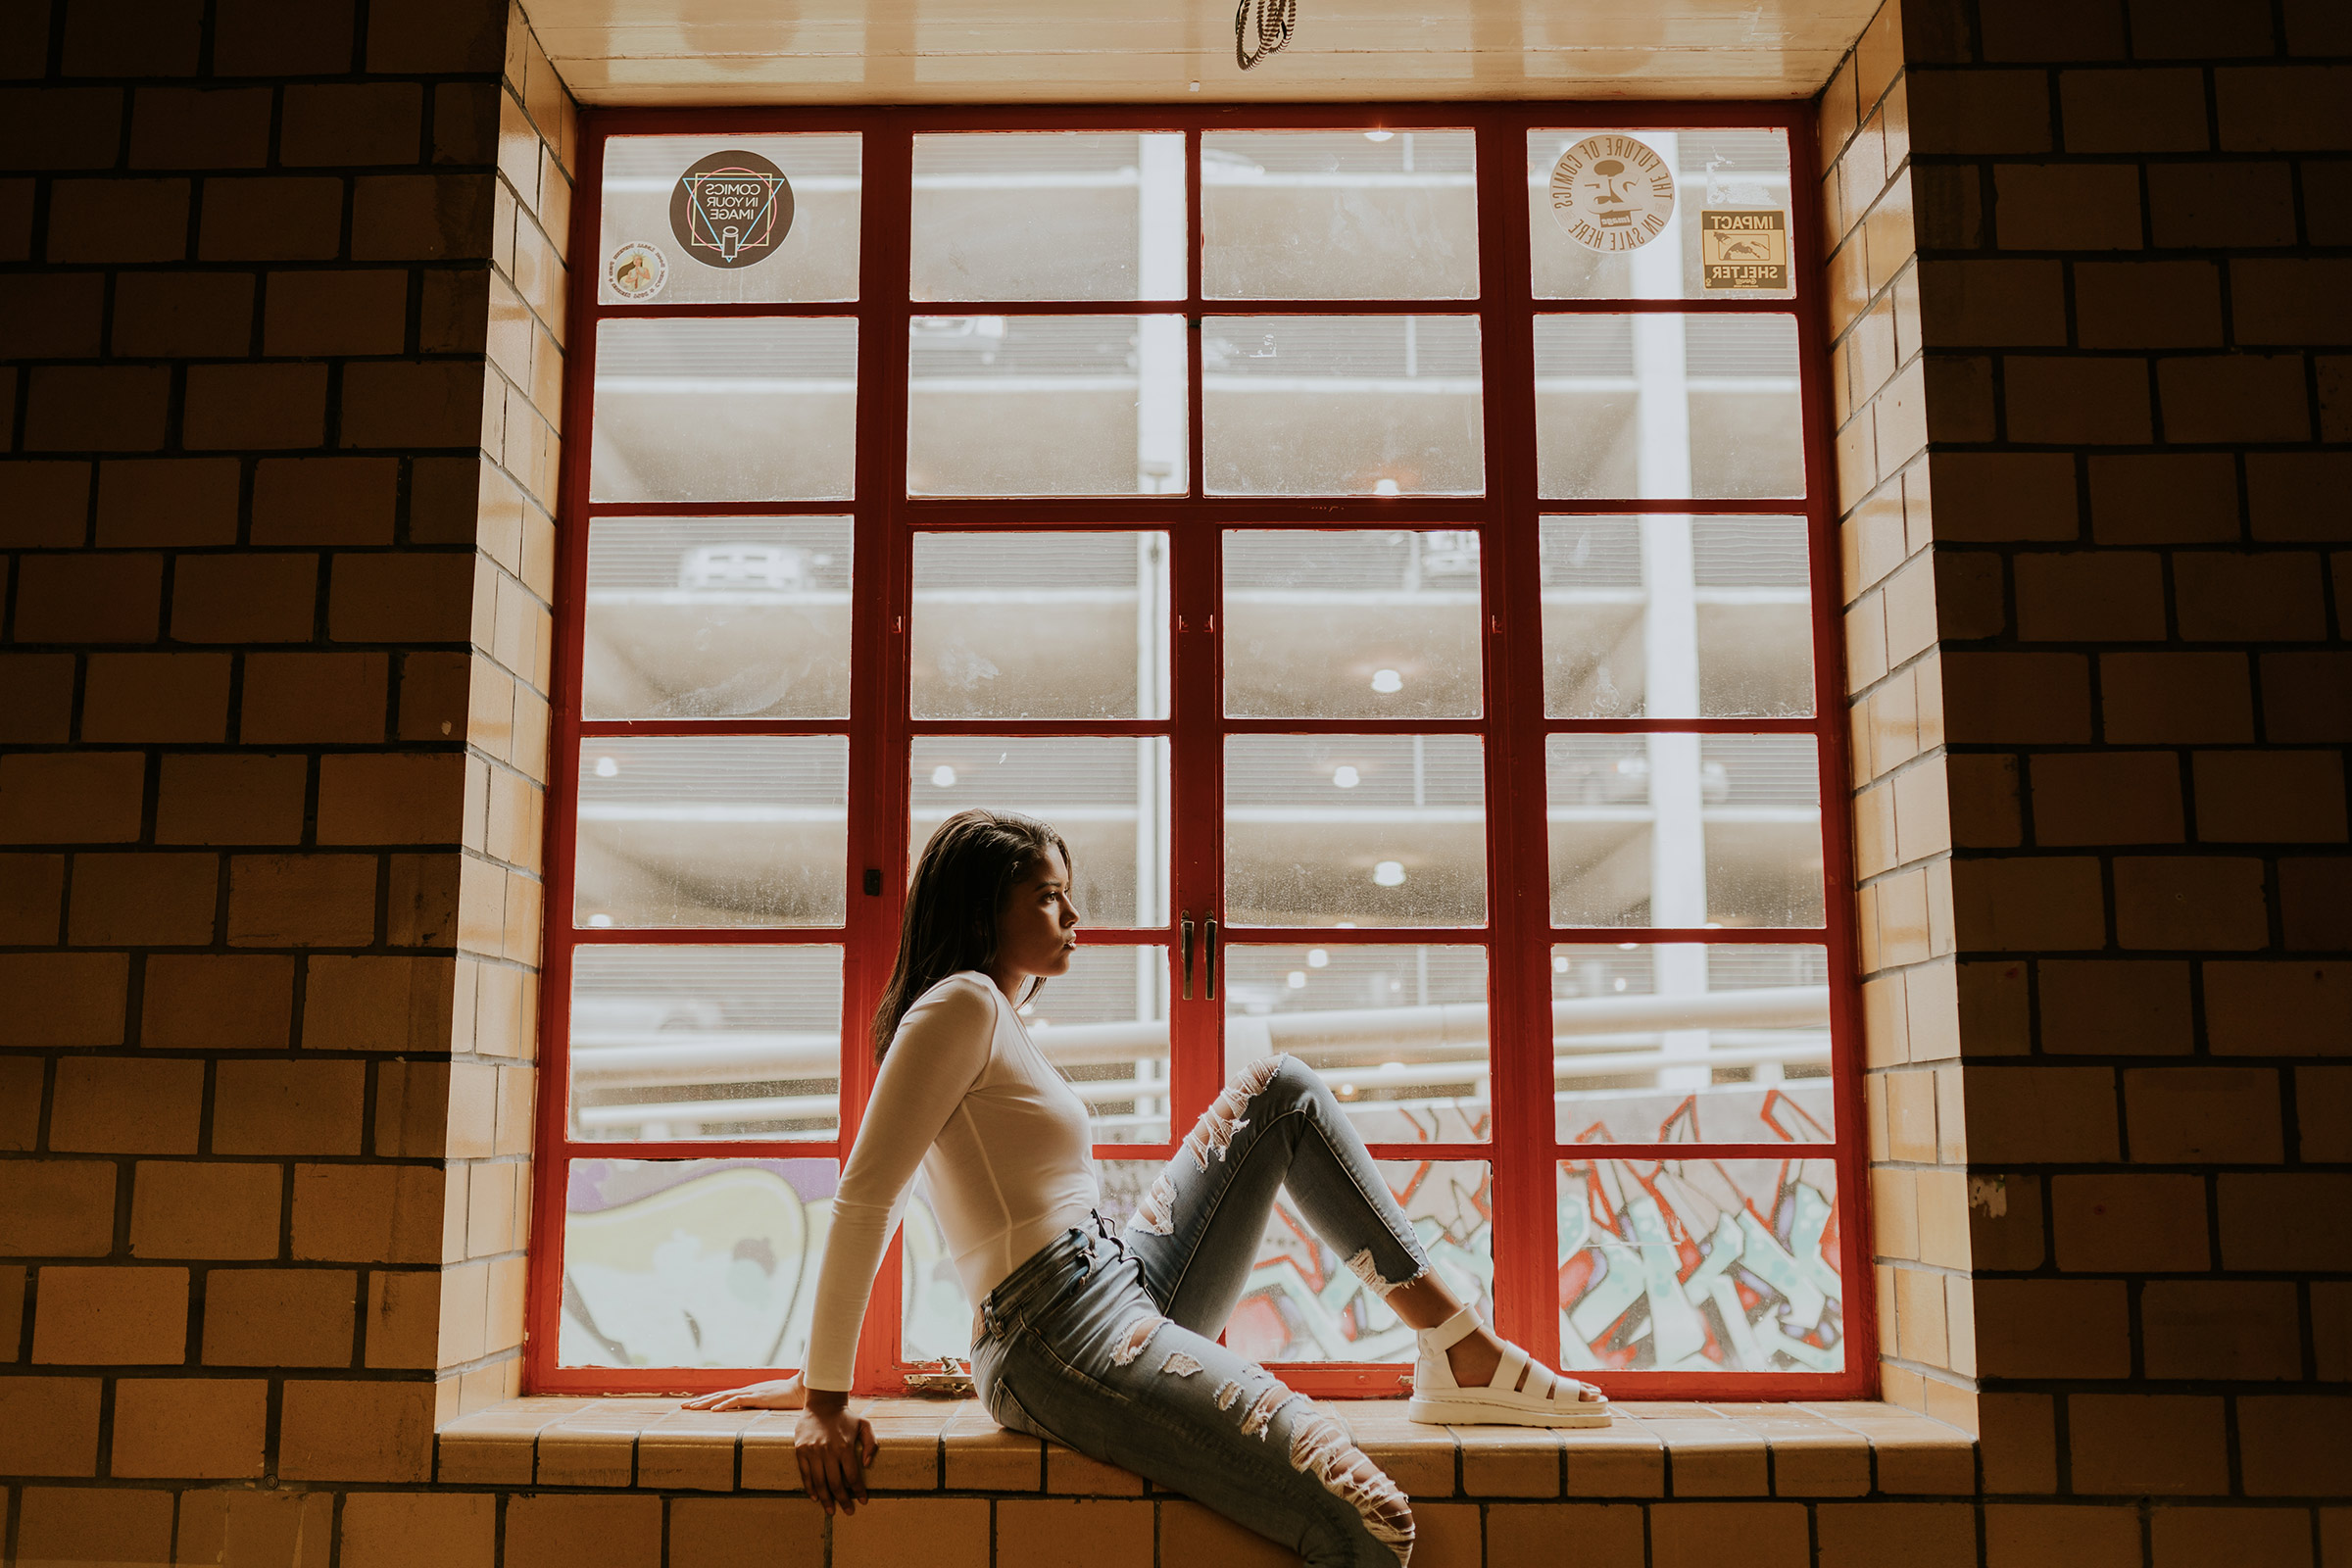 devina-girl-sitting-in-window-a-social-club-with-white-on-senior-roosevelt-high-school-desmoines-iowa-raelyn-ramey-photography-54.jpg